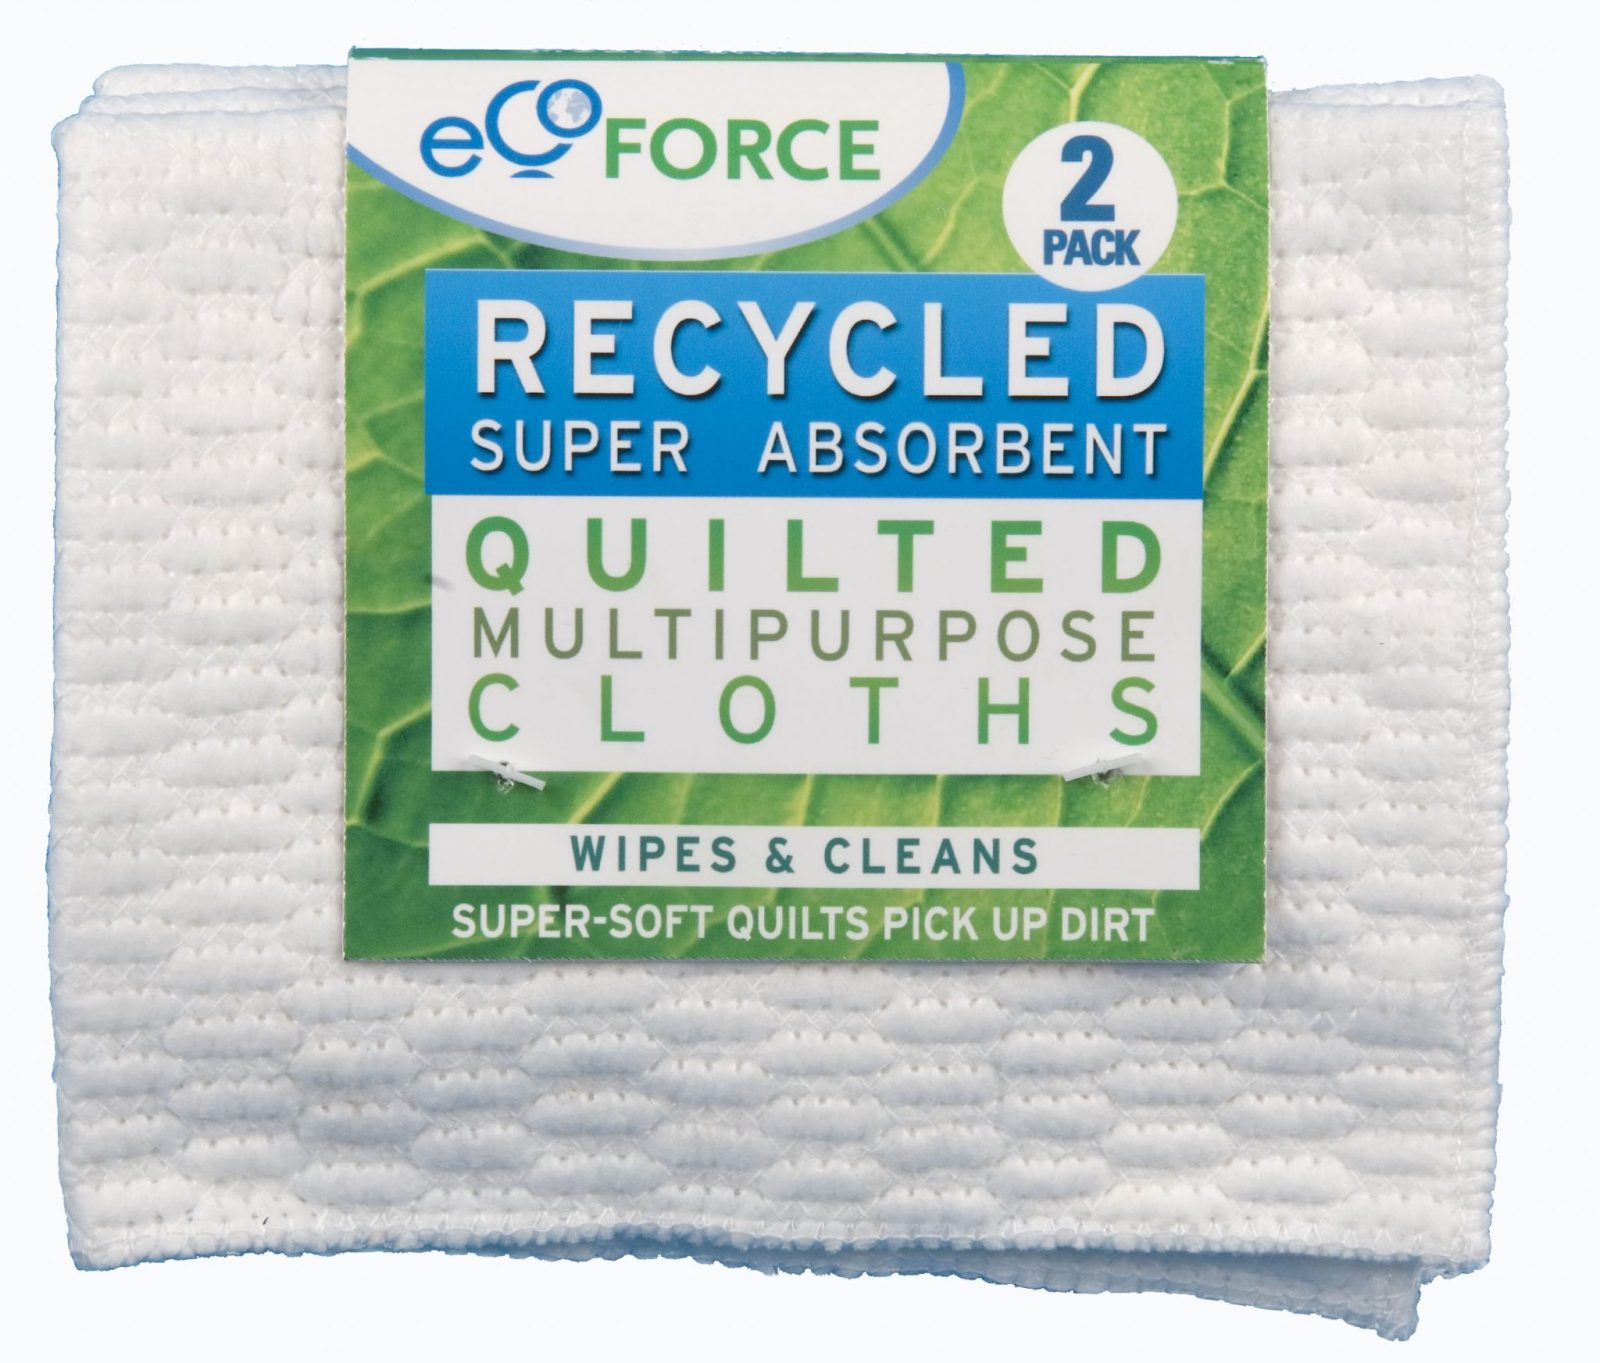 Win: 3 x a full years supply of ecoforce cleaning products each worth £50+